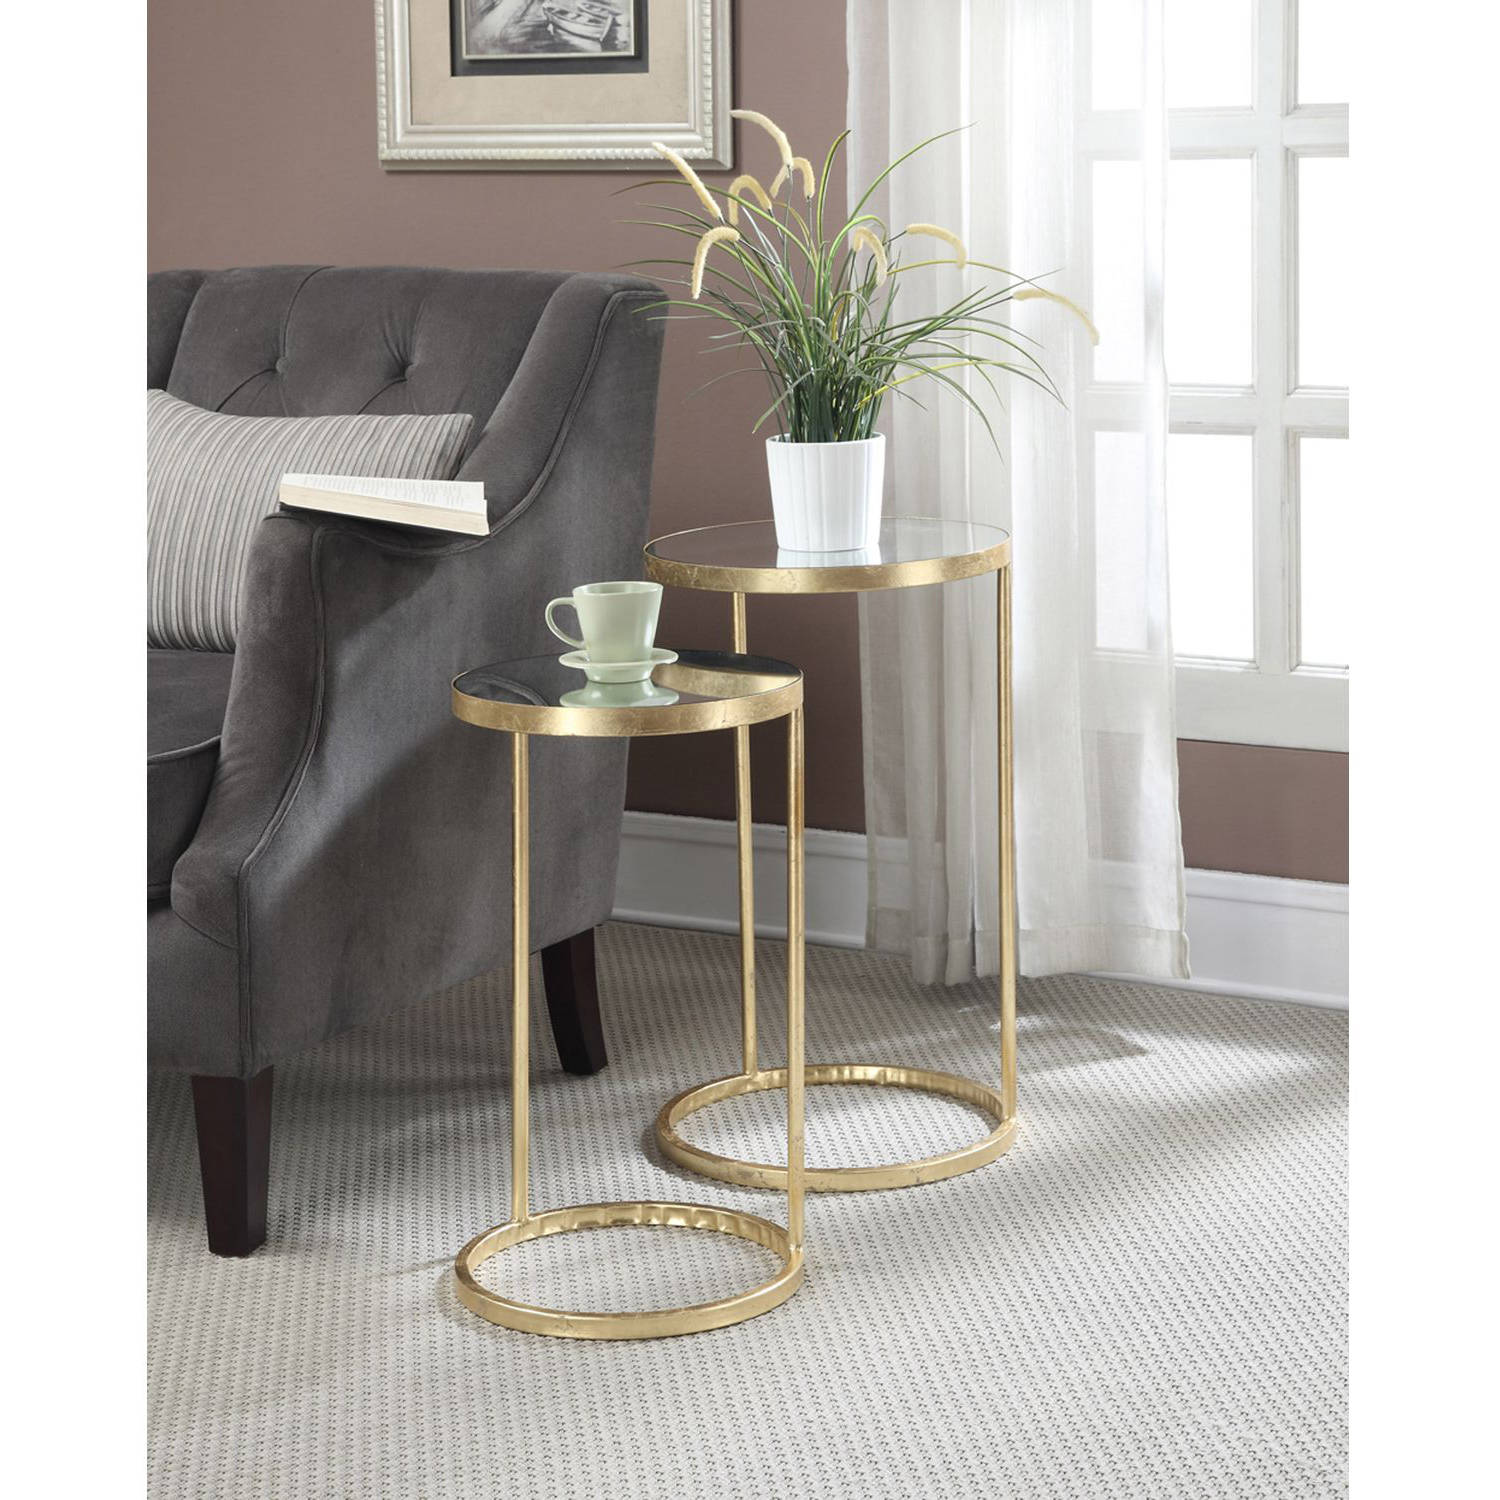 Convenience Concepts Gold Coast Round Nesting Mirror End Tables, Antique Golden